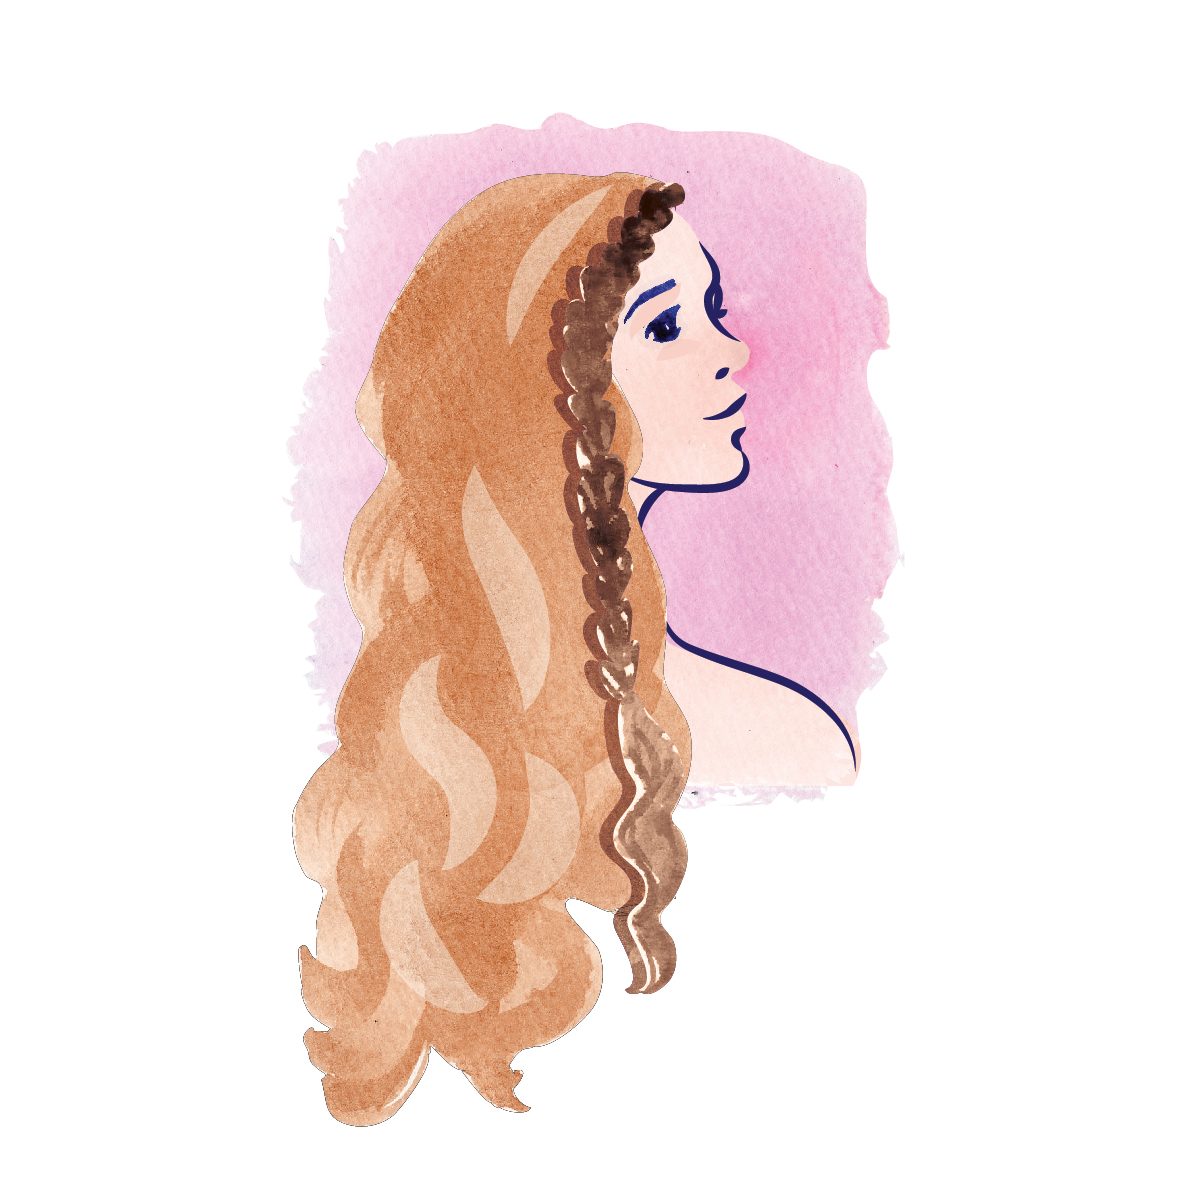 panasonic-illustrations-v1-JH_Style 02- Beachy Waves with Braided Headband.jpg